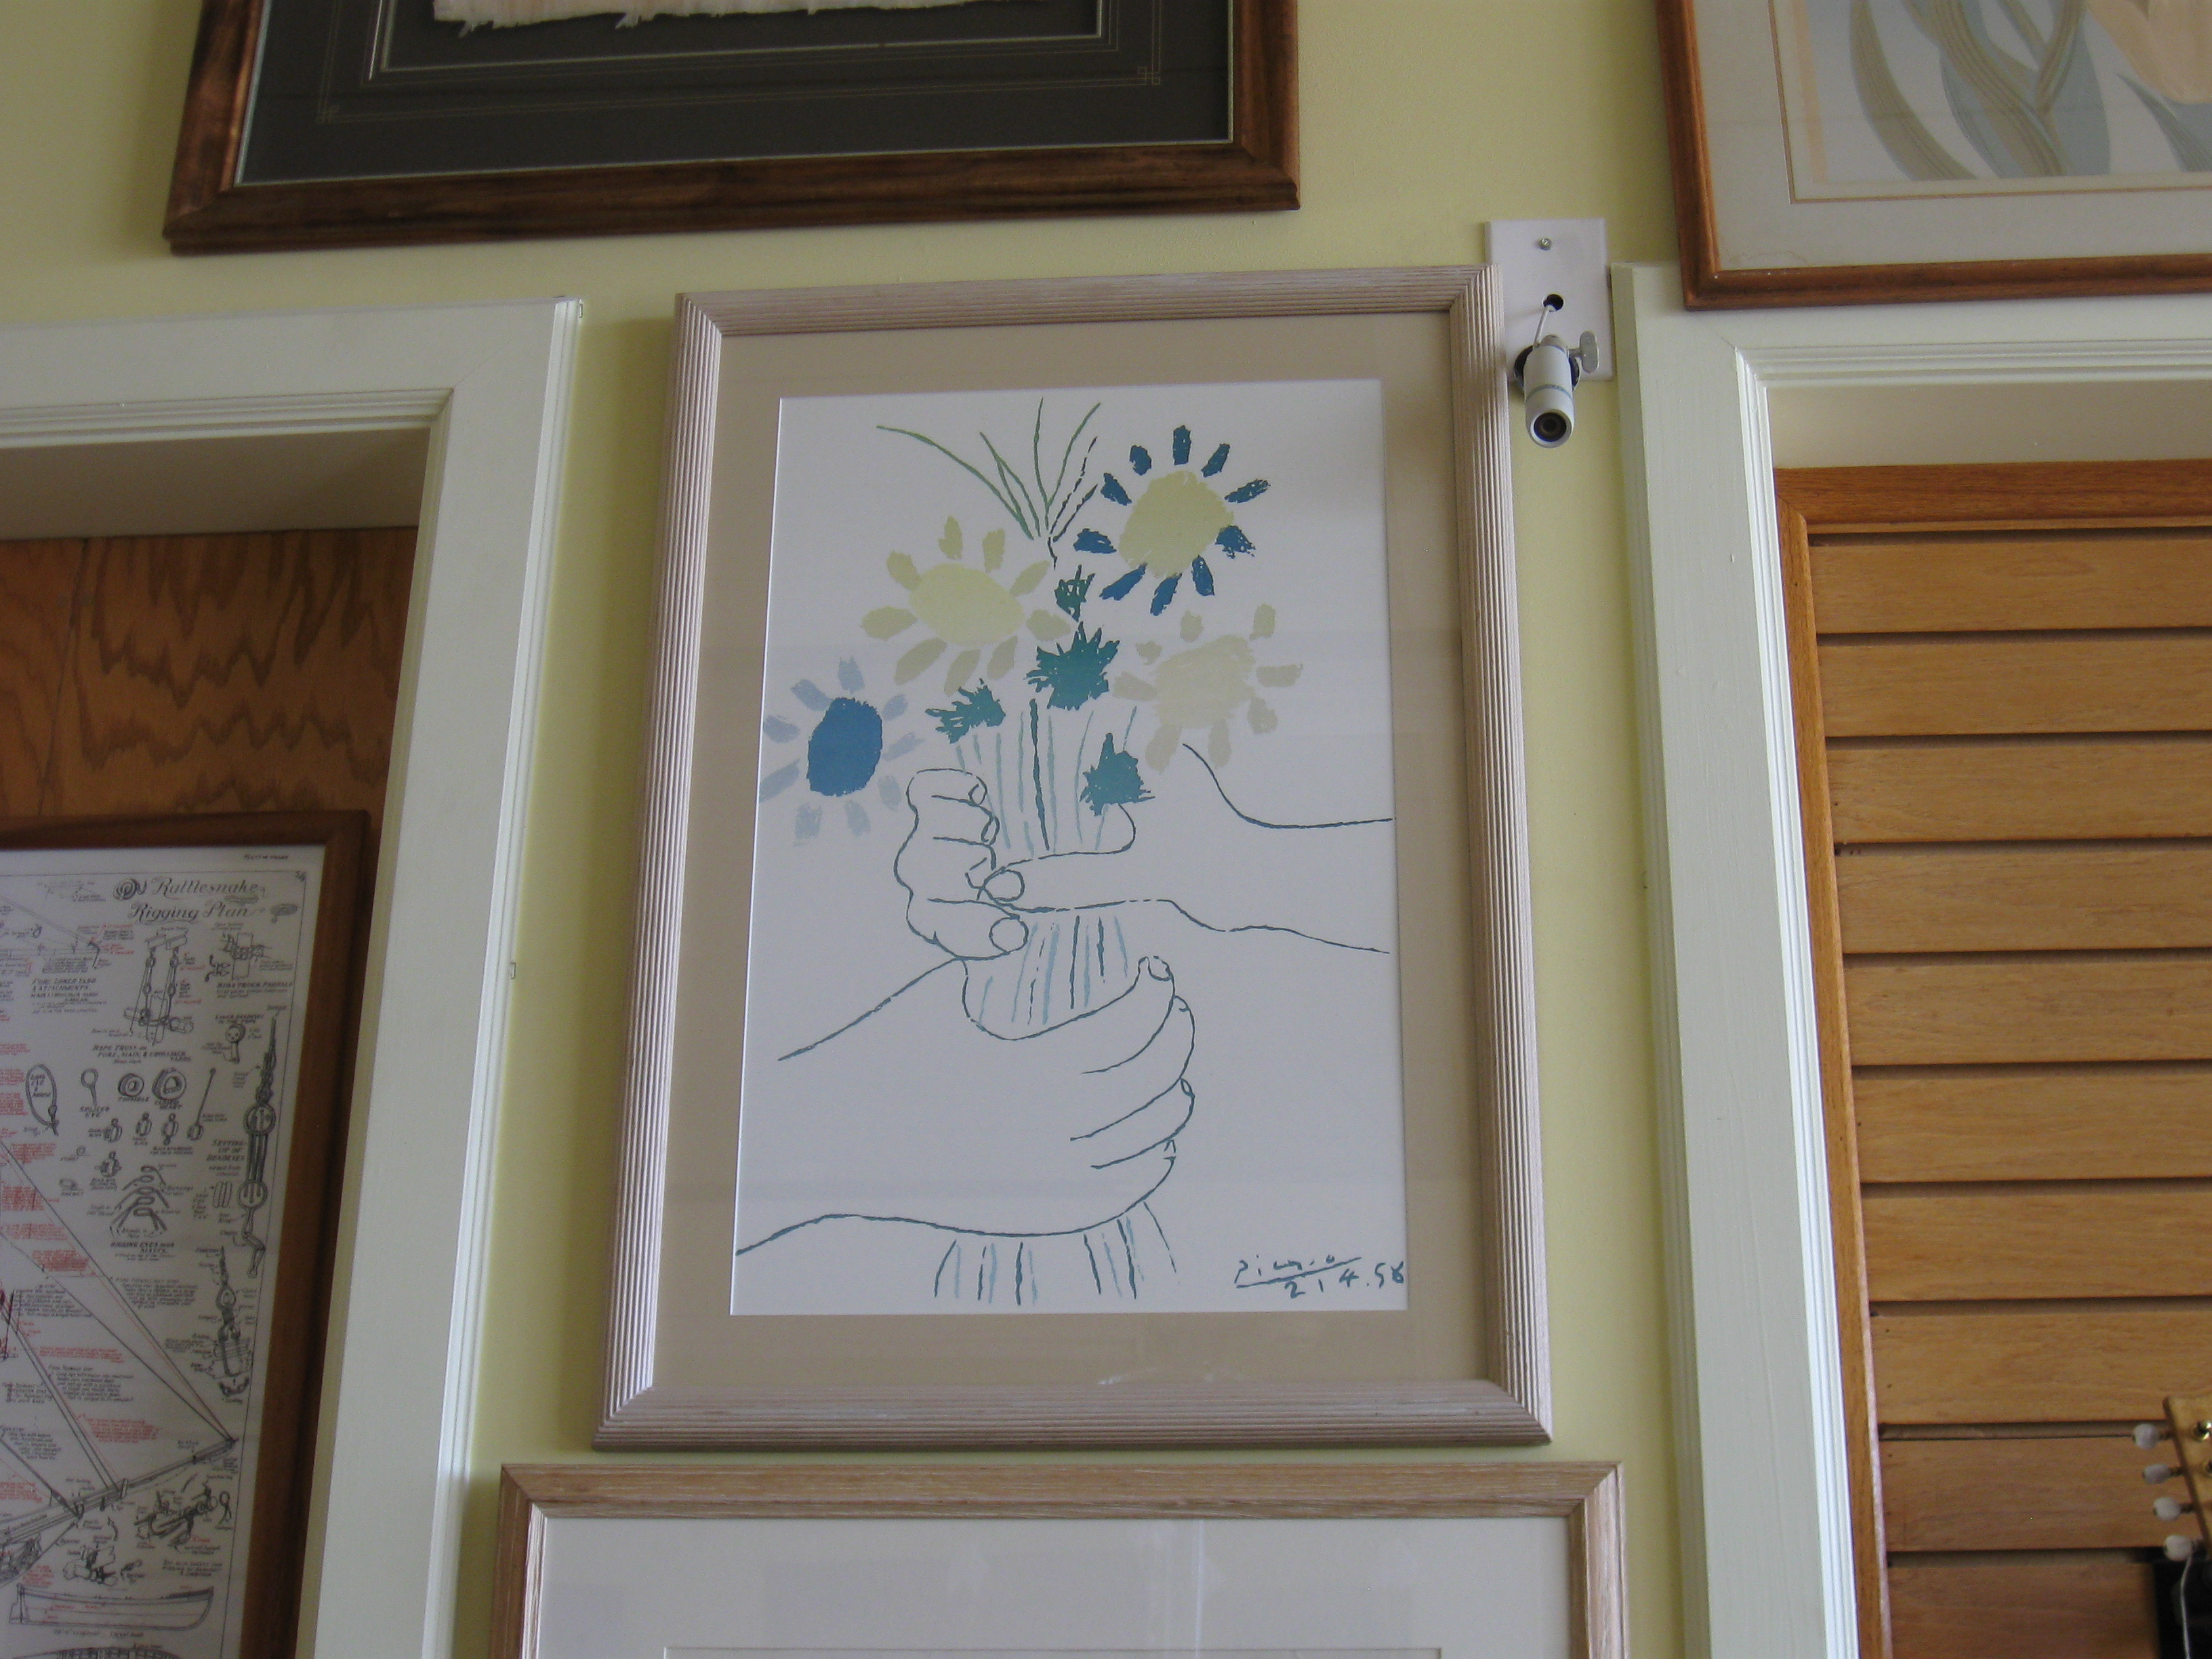 Pablo Picasso Flowers and Hands Print Signed and Dated 21.4.58 Approx. 30